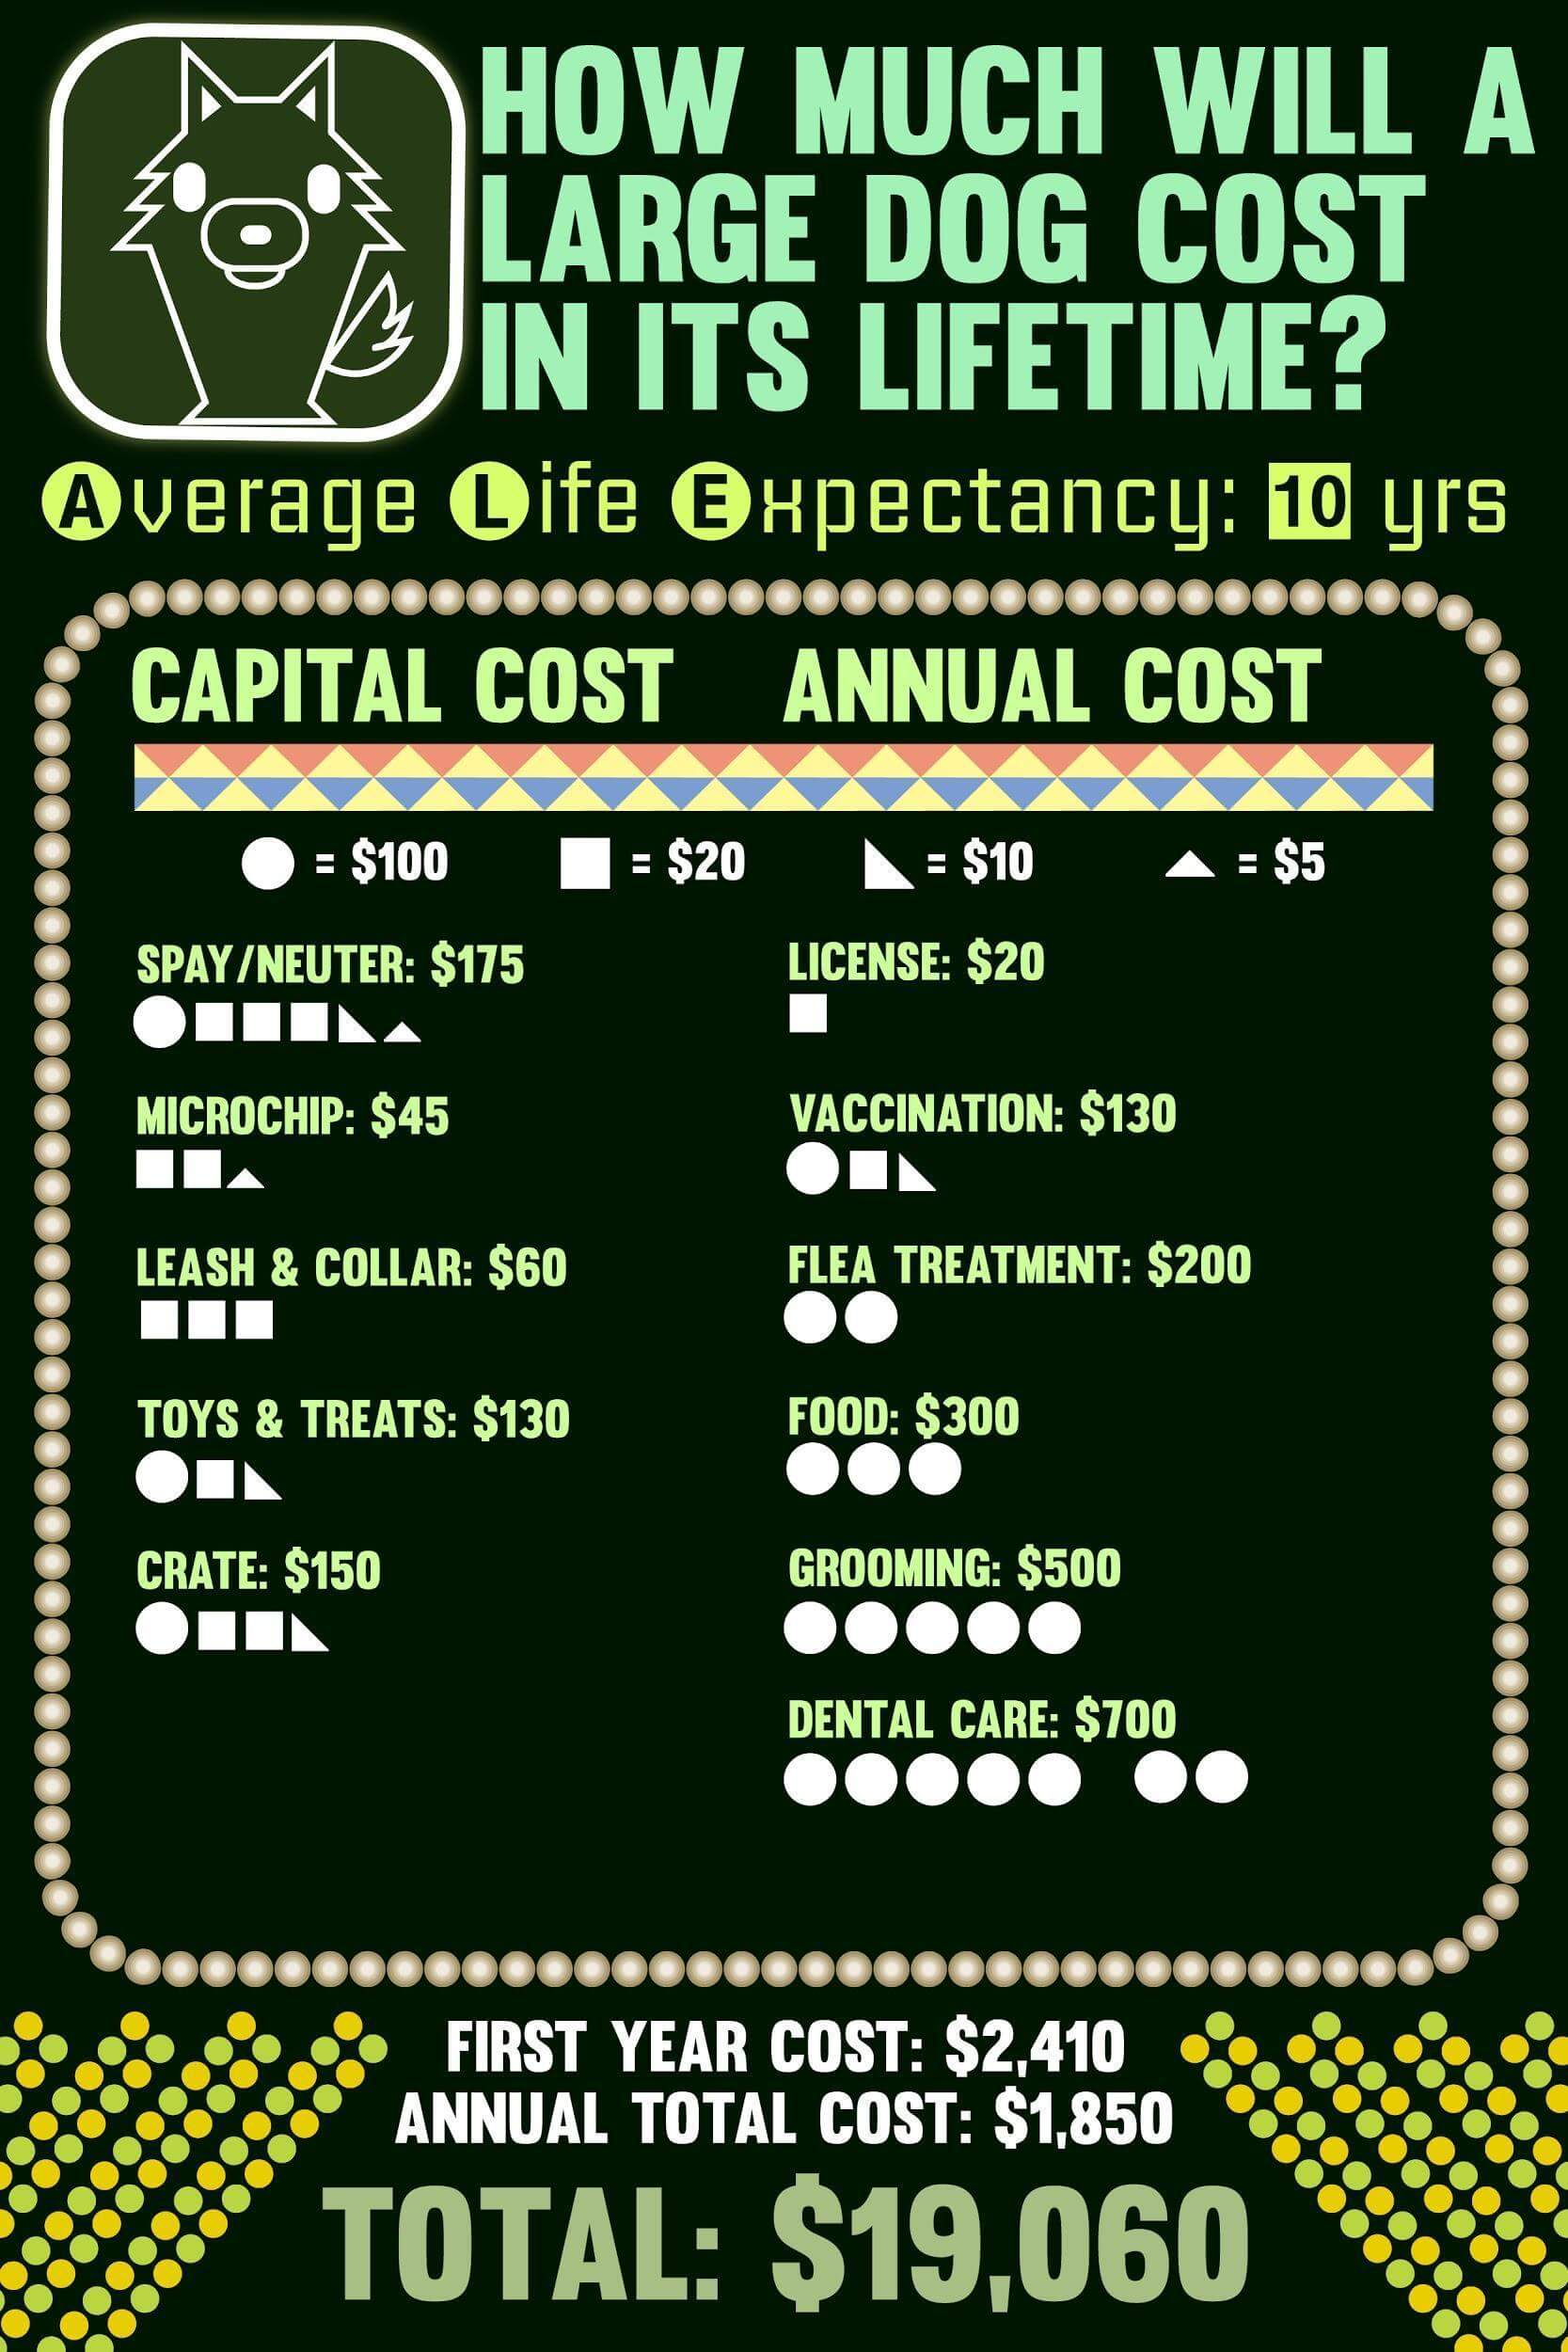 Lifetime cost of large dogs